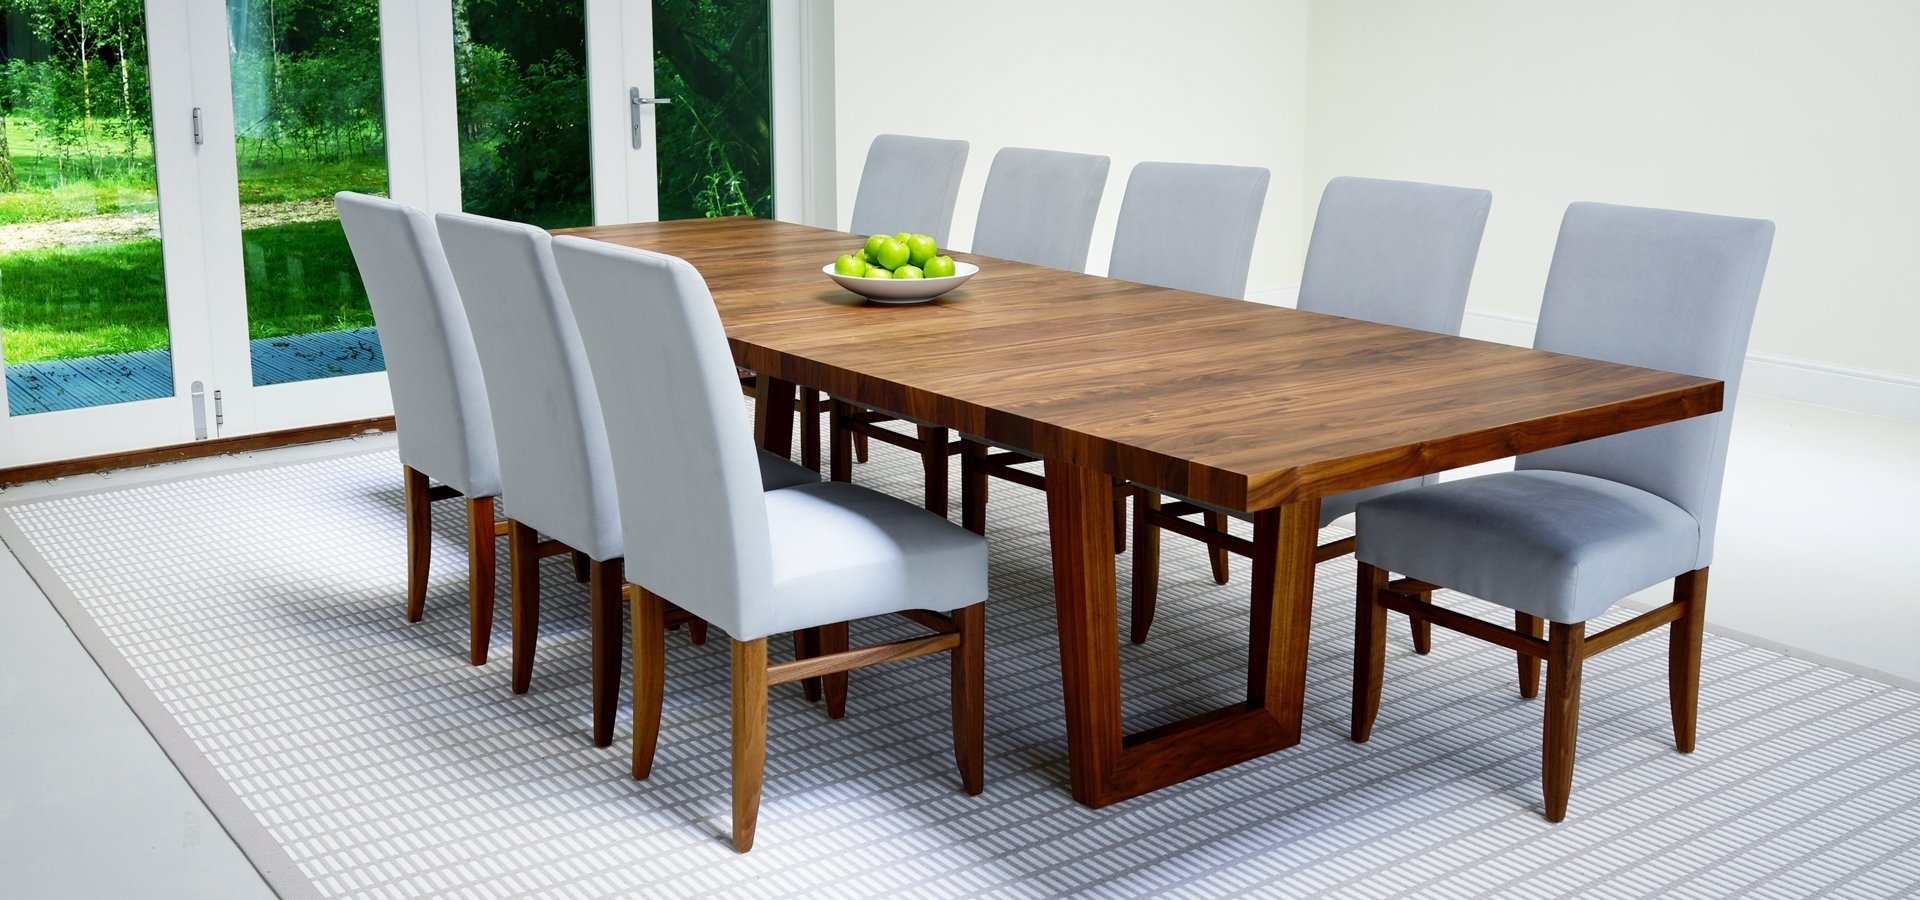 Extendable Dining Tables 6 Chairs with Current Contemporary Dining Tables & Furnitureberrydesign. Bespoke /custom